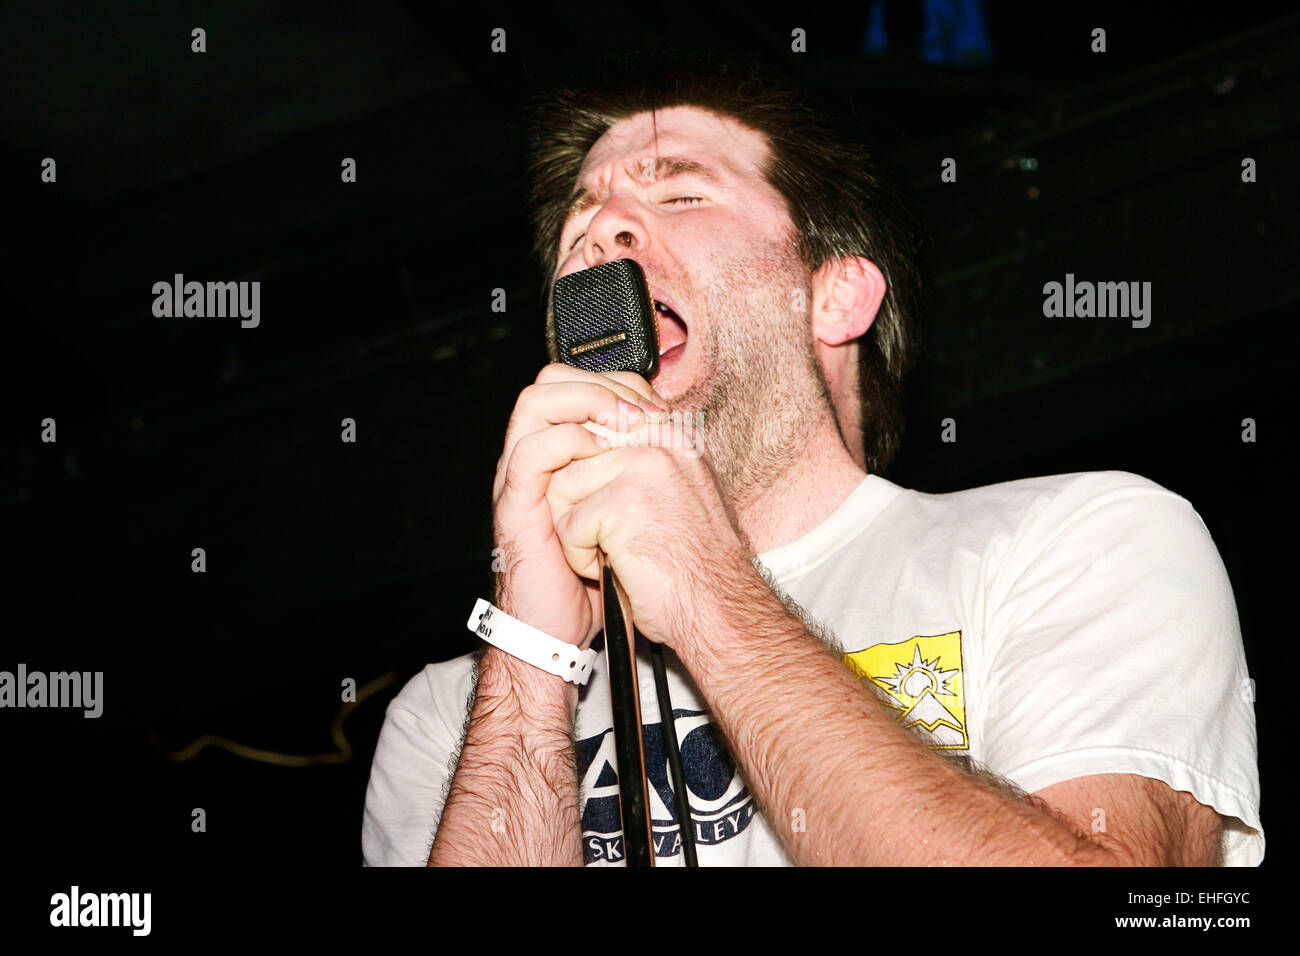 LCD Soundsystem live on the XFM stage at the TDK Cross Central Festival London. - Stock Image